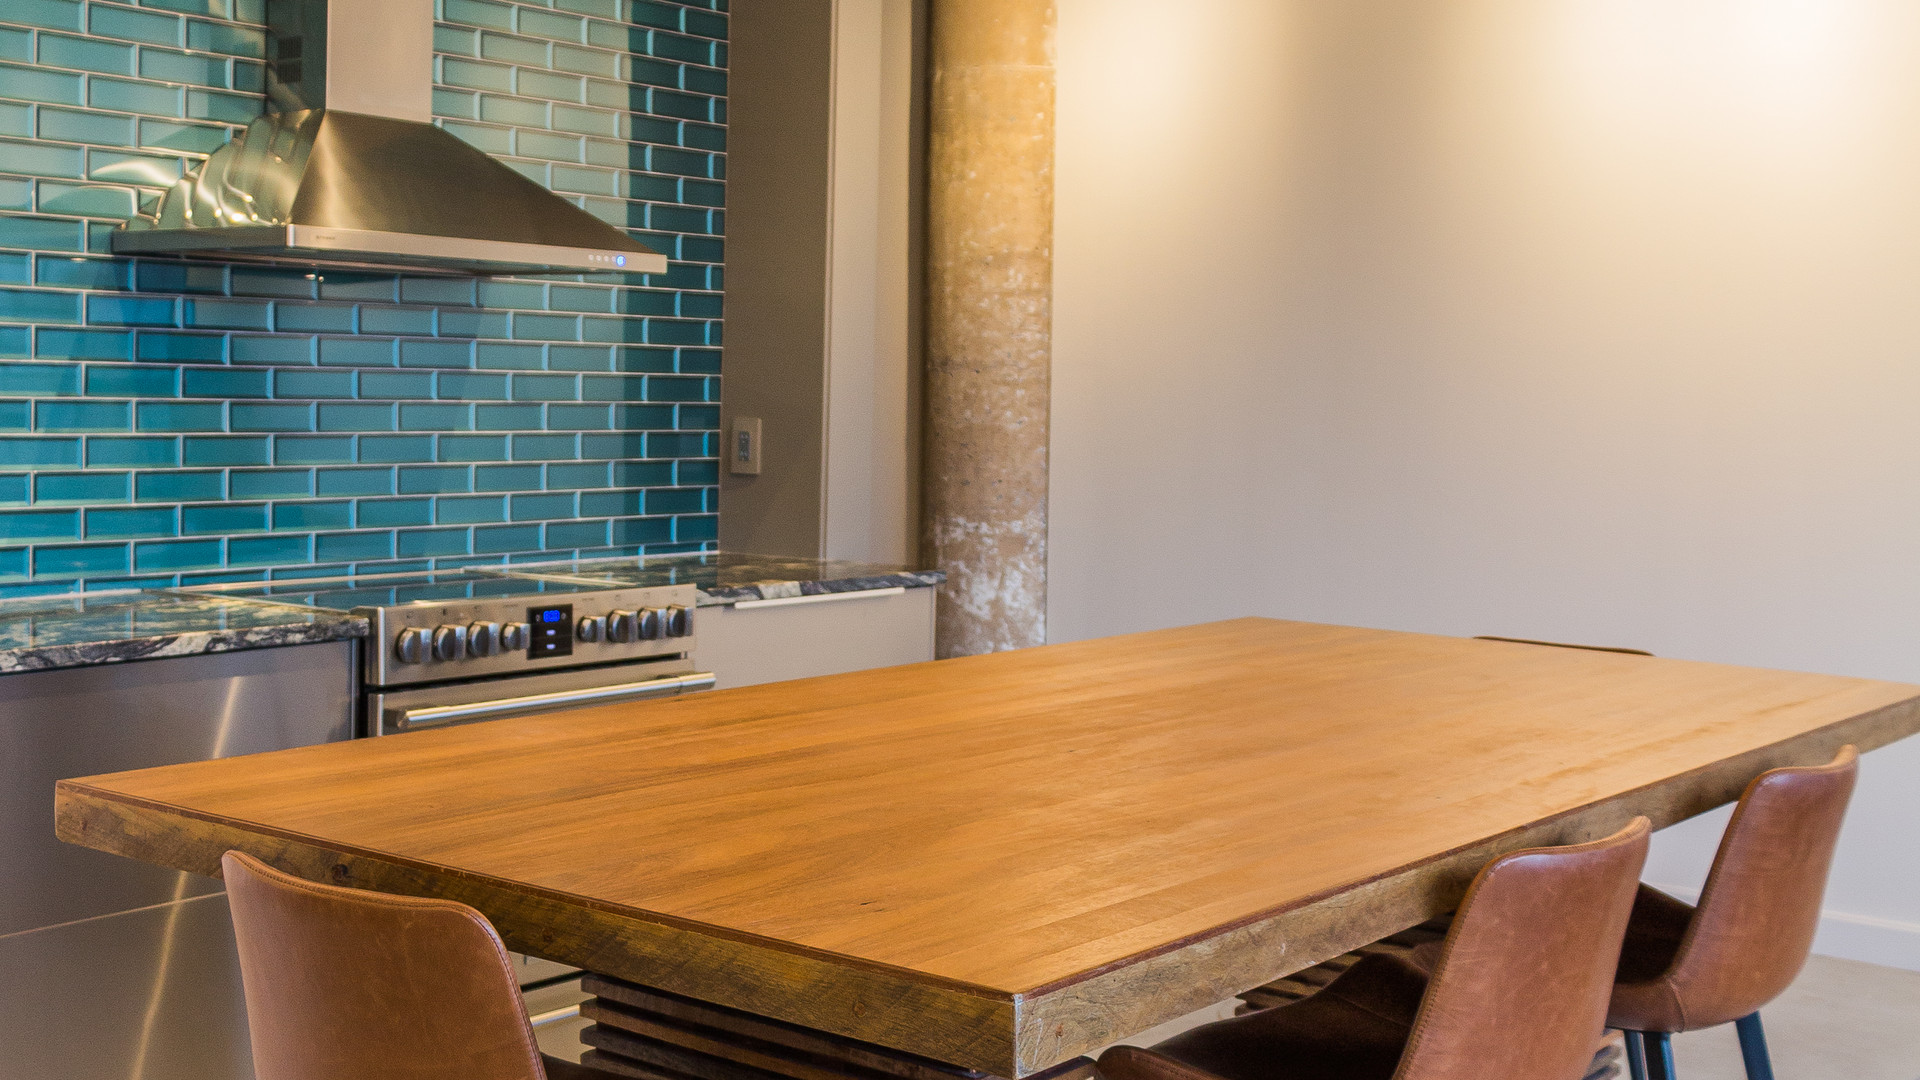 Custom table doubles as kitchen island